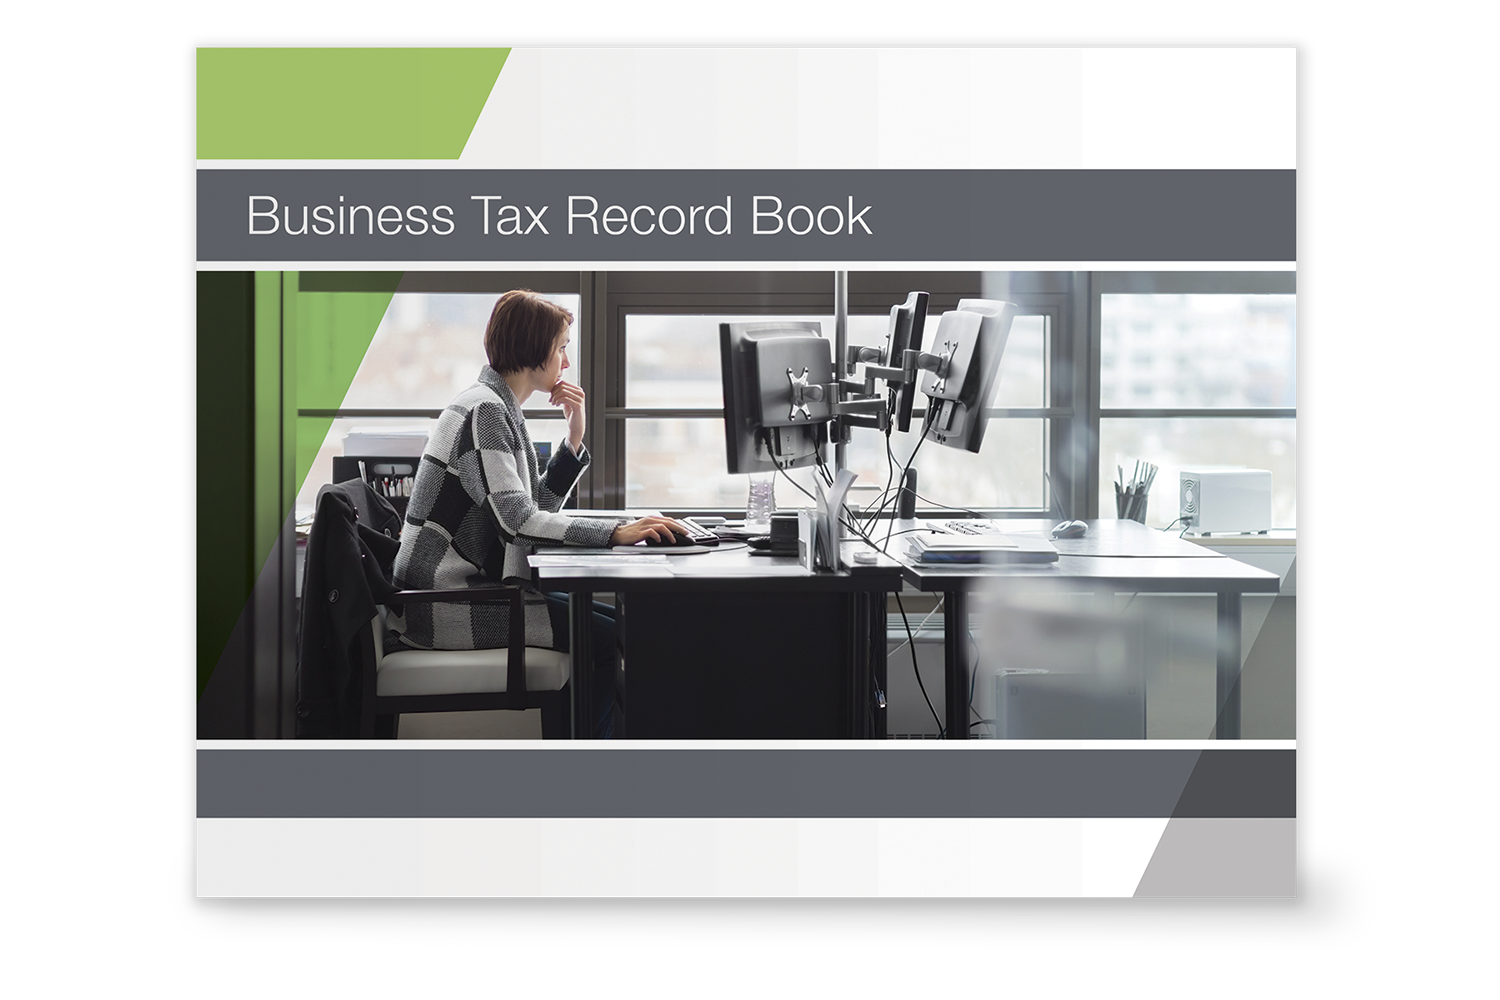 Business Tax Record Book - #612